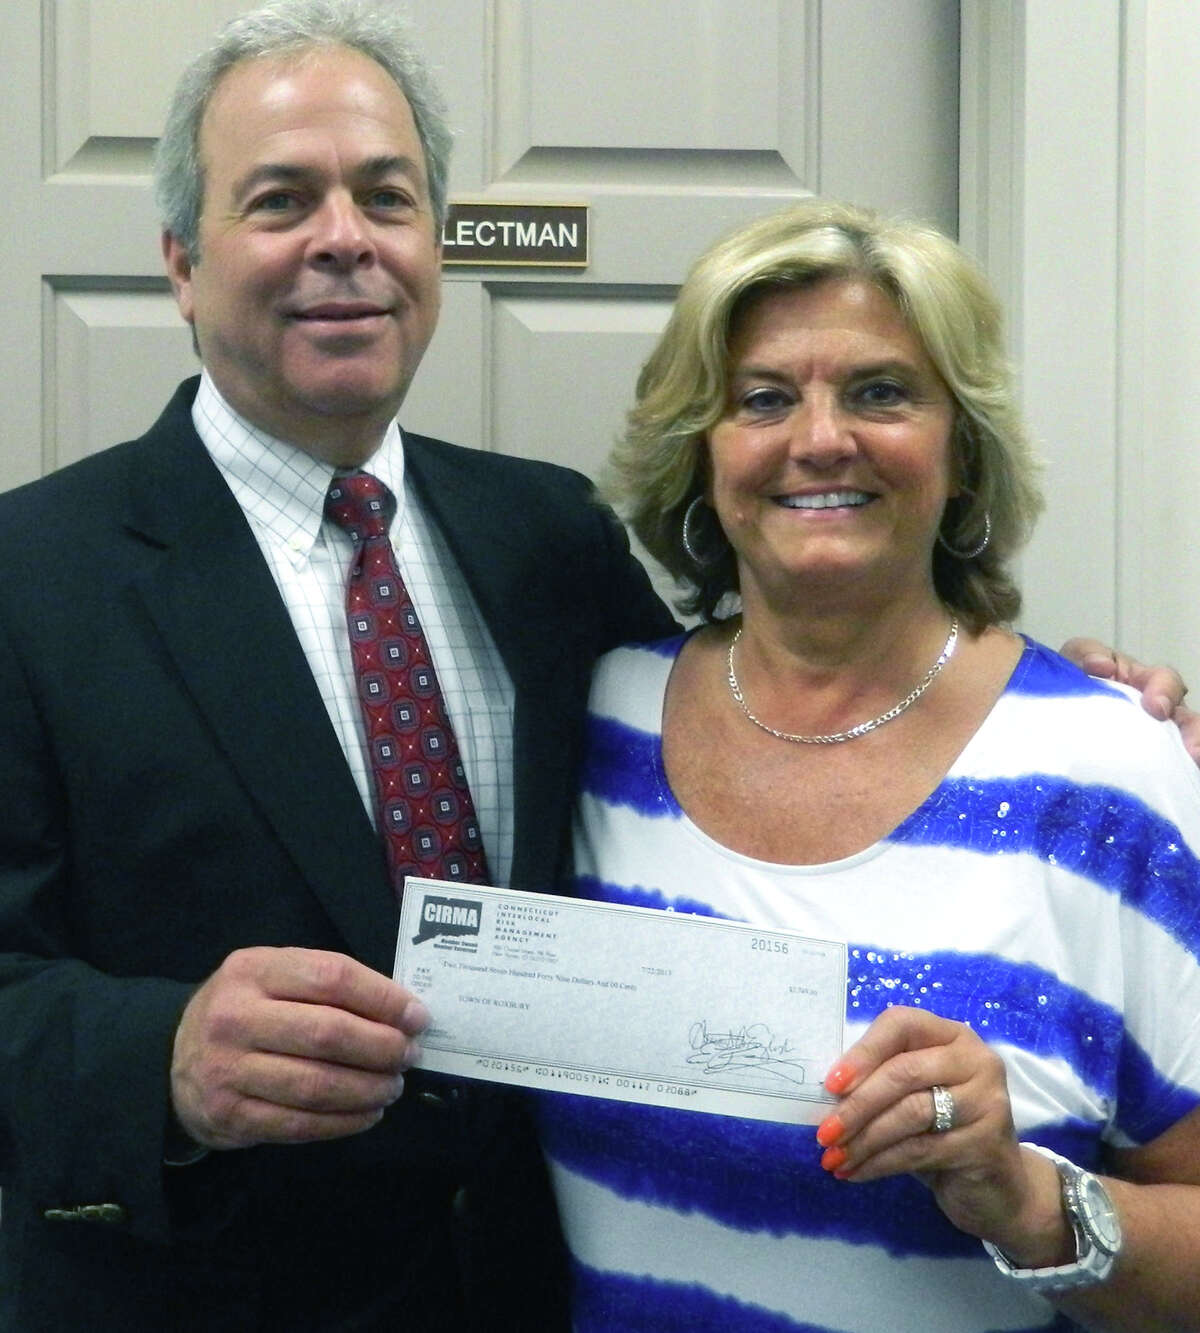 Steven Bixler, vice president for underwriting, marketing and member relations of the Connecticut Interlocal Risk Management Agency, presents a check for $2,749, the town's pro-rated share of CIRMAís $3 million membersí equity distribution for 2013,.to Roxbury First Selectman Barbara Henry. August 2013 Courtesy of the Town of Roxbury